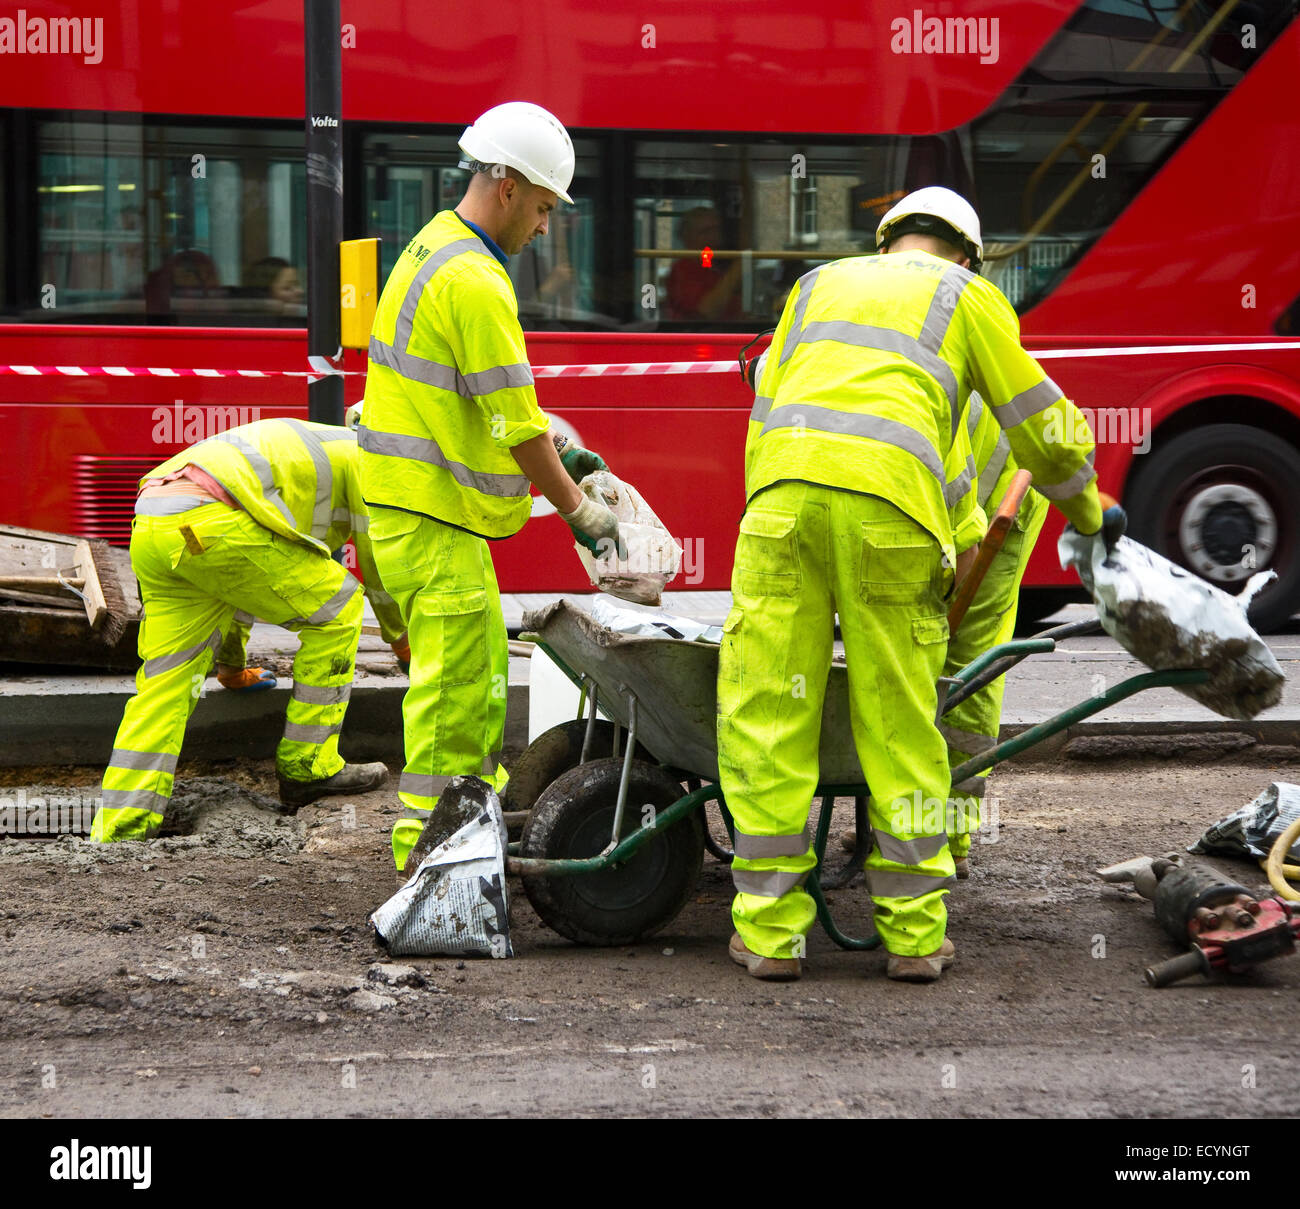 LONDON - OCTOBER 18TH: Unidentified workman preparing a mixture on October 18th, 2014 in London, England, UK. The - Stock Image